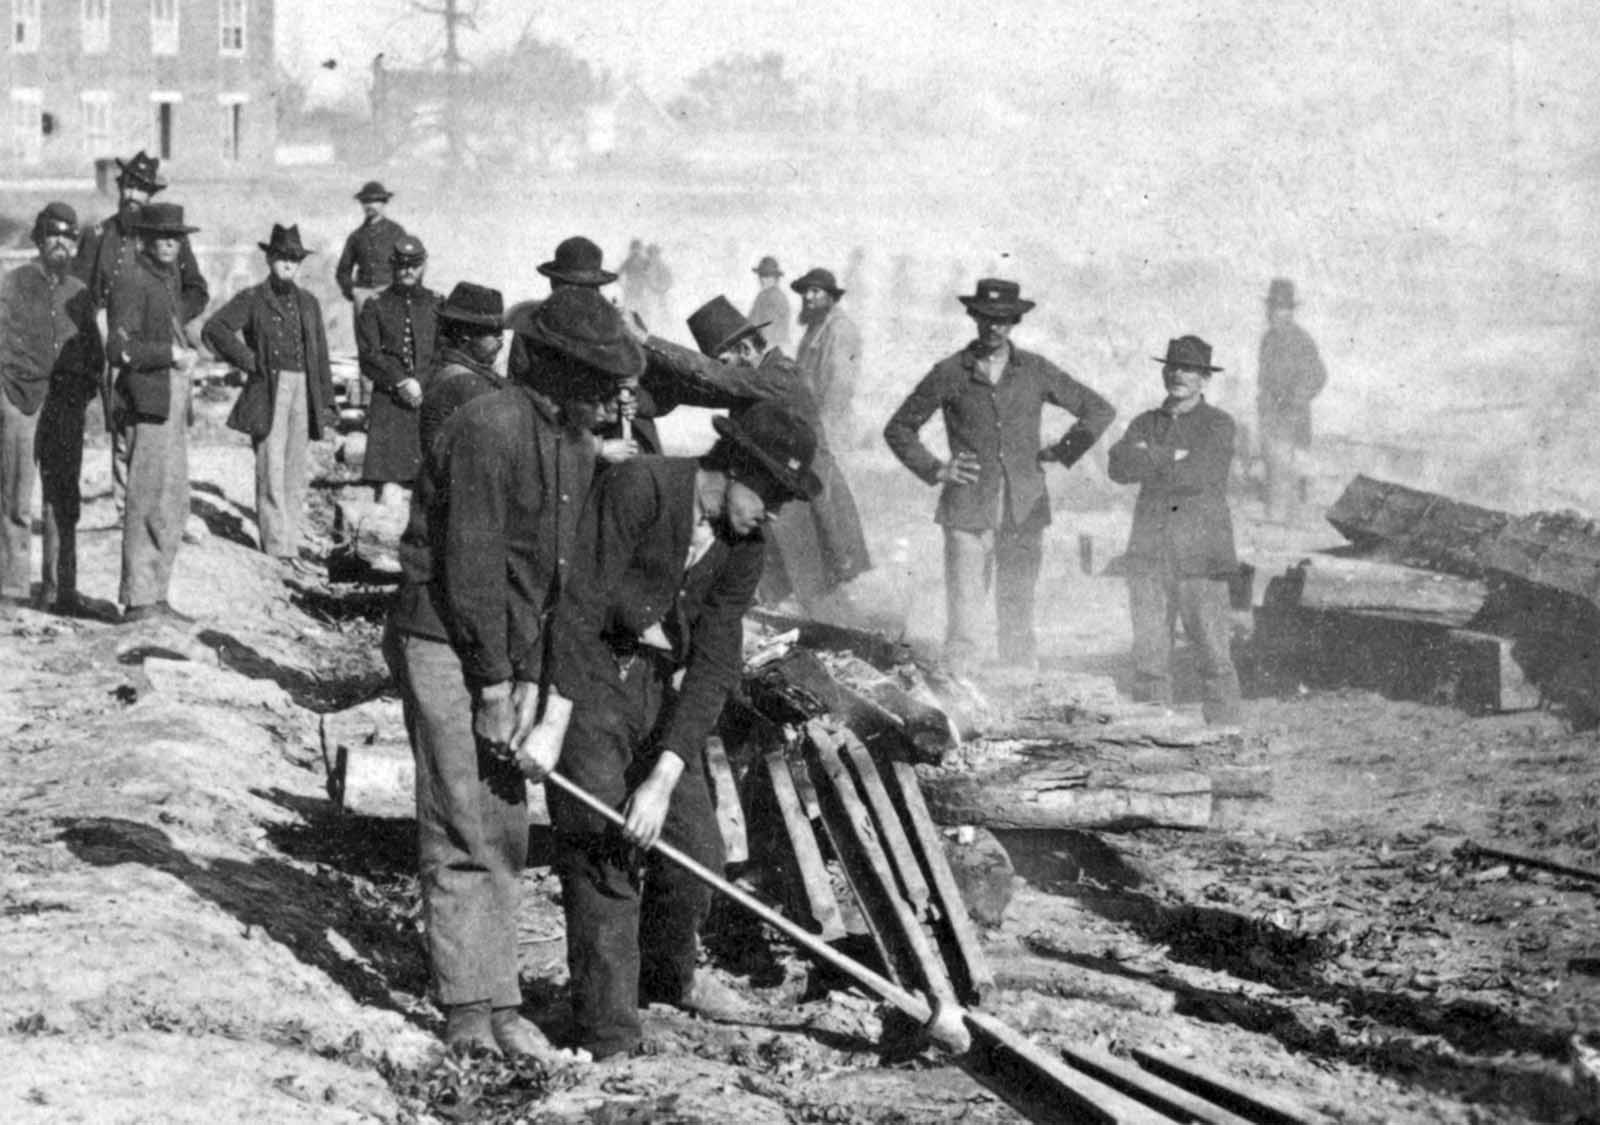 General Sherman's men destroying the railroad before the evacuation of Atlanta, Georgia in 1864.